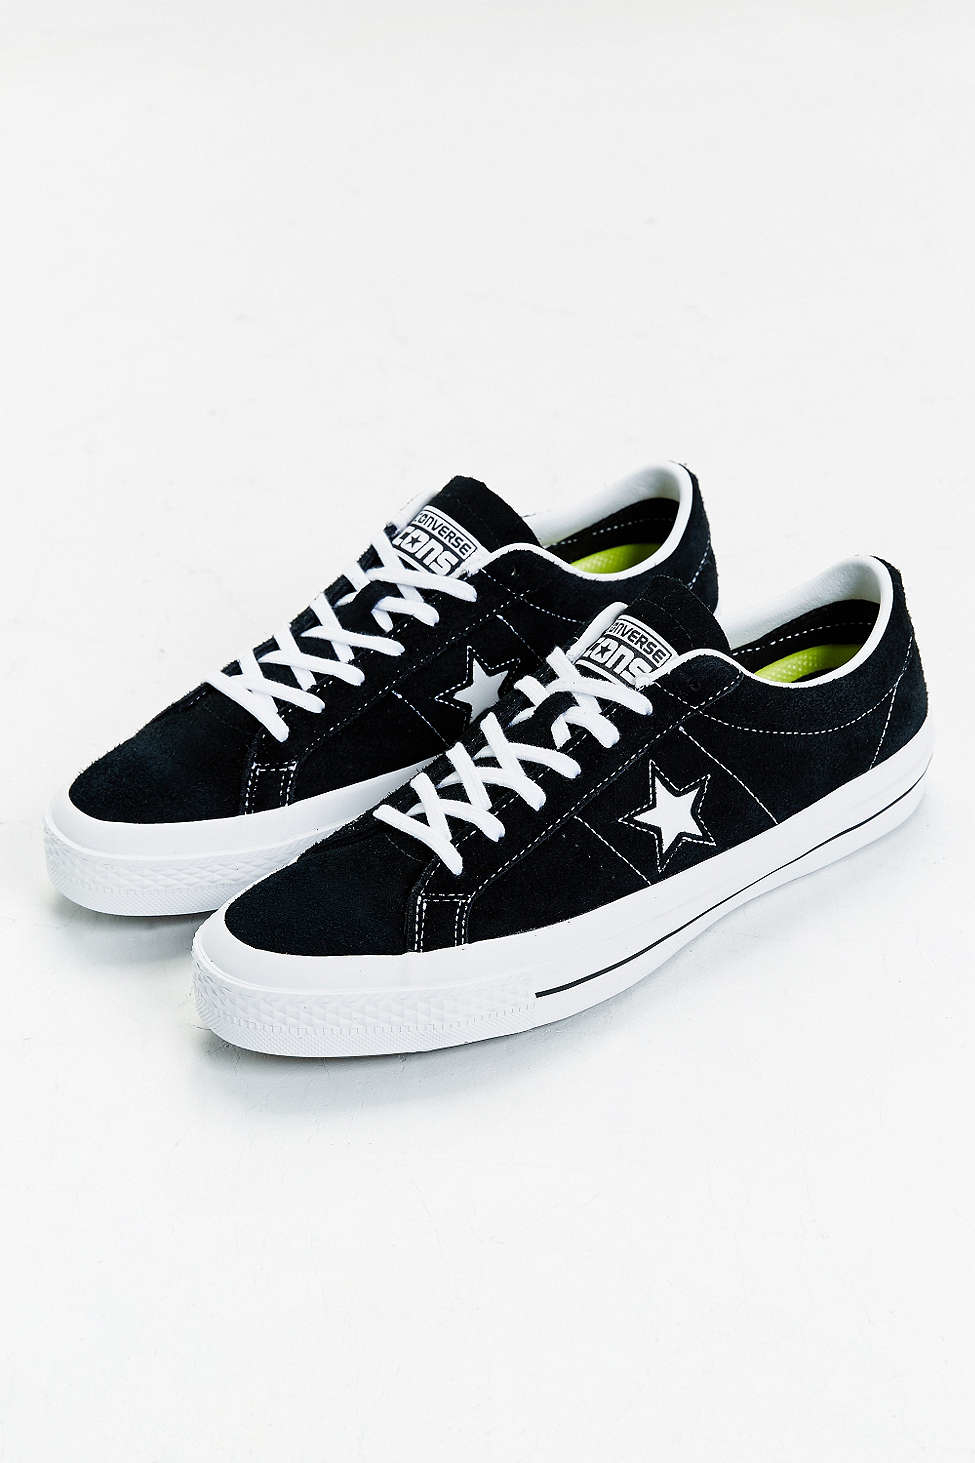 Converse Cons One Star Pro Sneaker In Black For Men Lyst